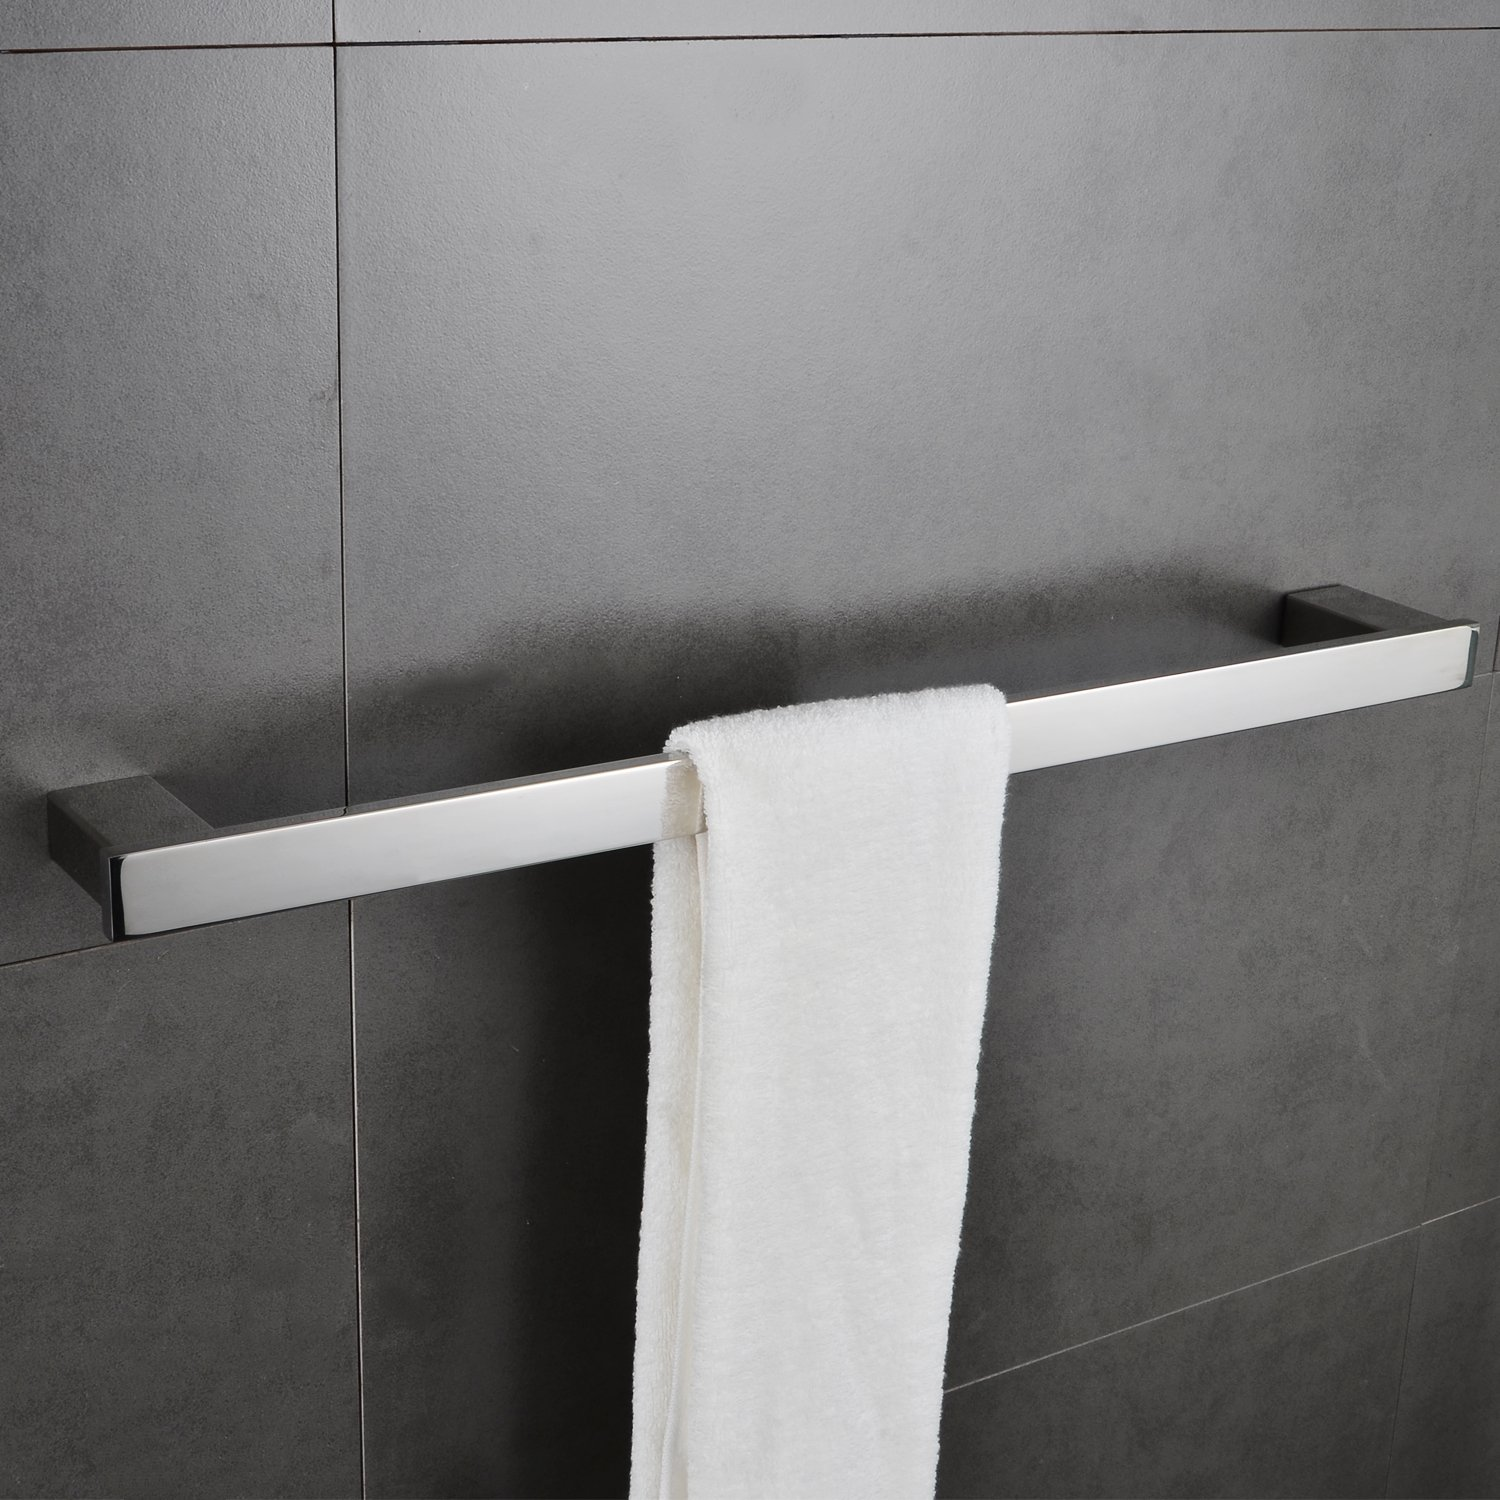 Bathroom Single Towel Bar Rack 24'' Bath Hand Towel Holder Contemporary Square Hotel Towel Bar Hanger Modern Heavy Duty Kitchen Shelf Storage Stainless Steel Wall Mount Polished Chrome MARMOLUX ACC